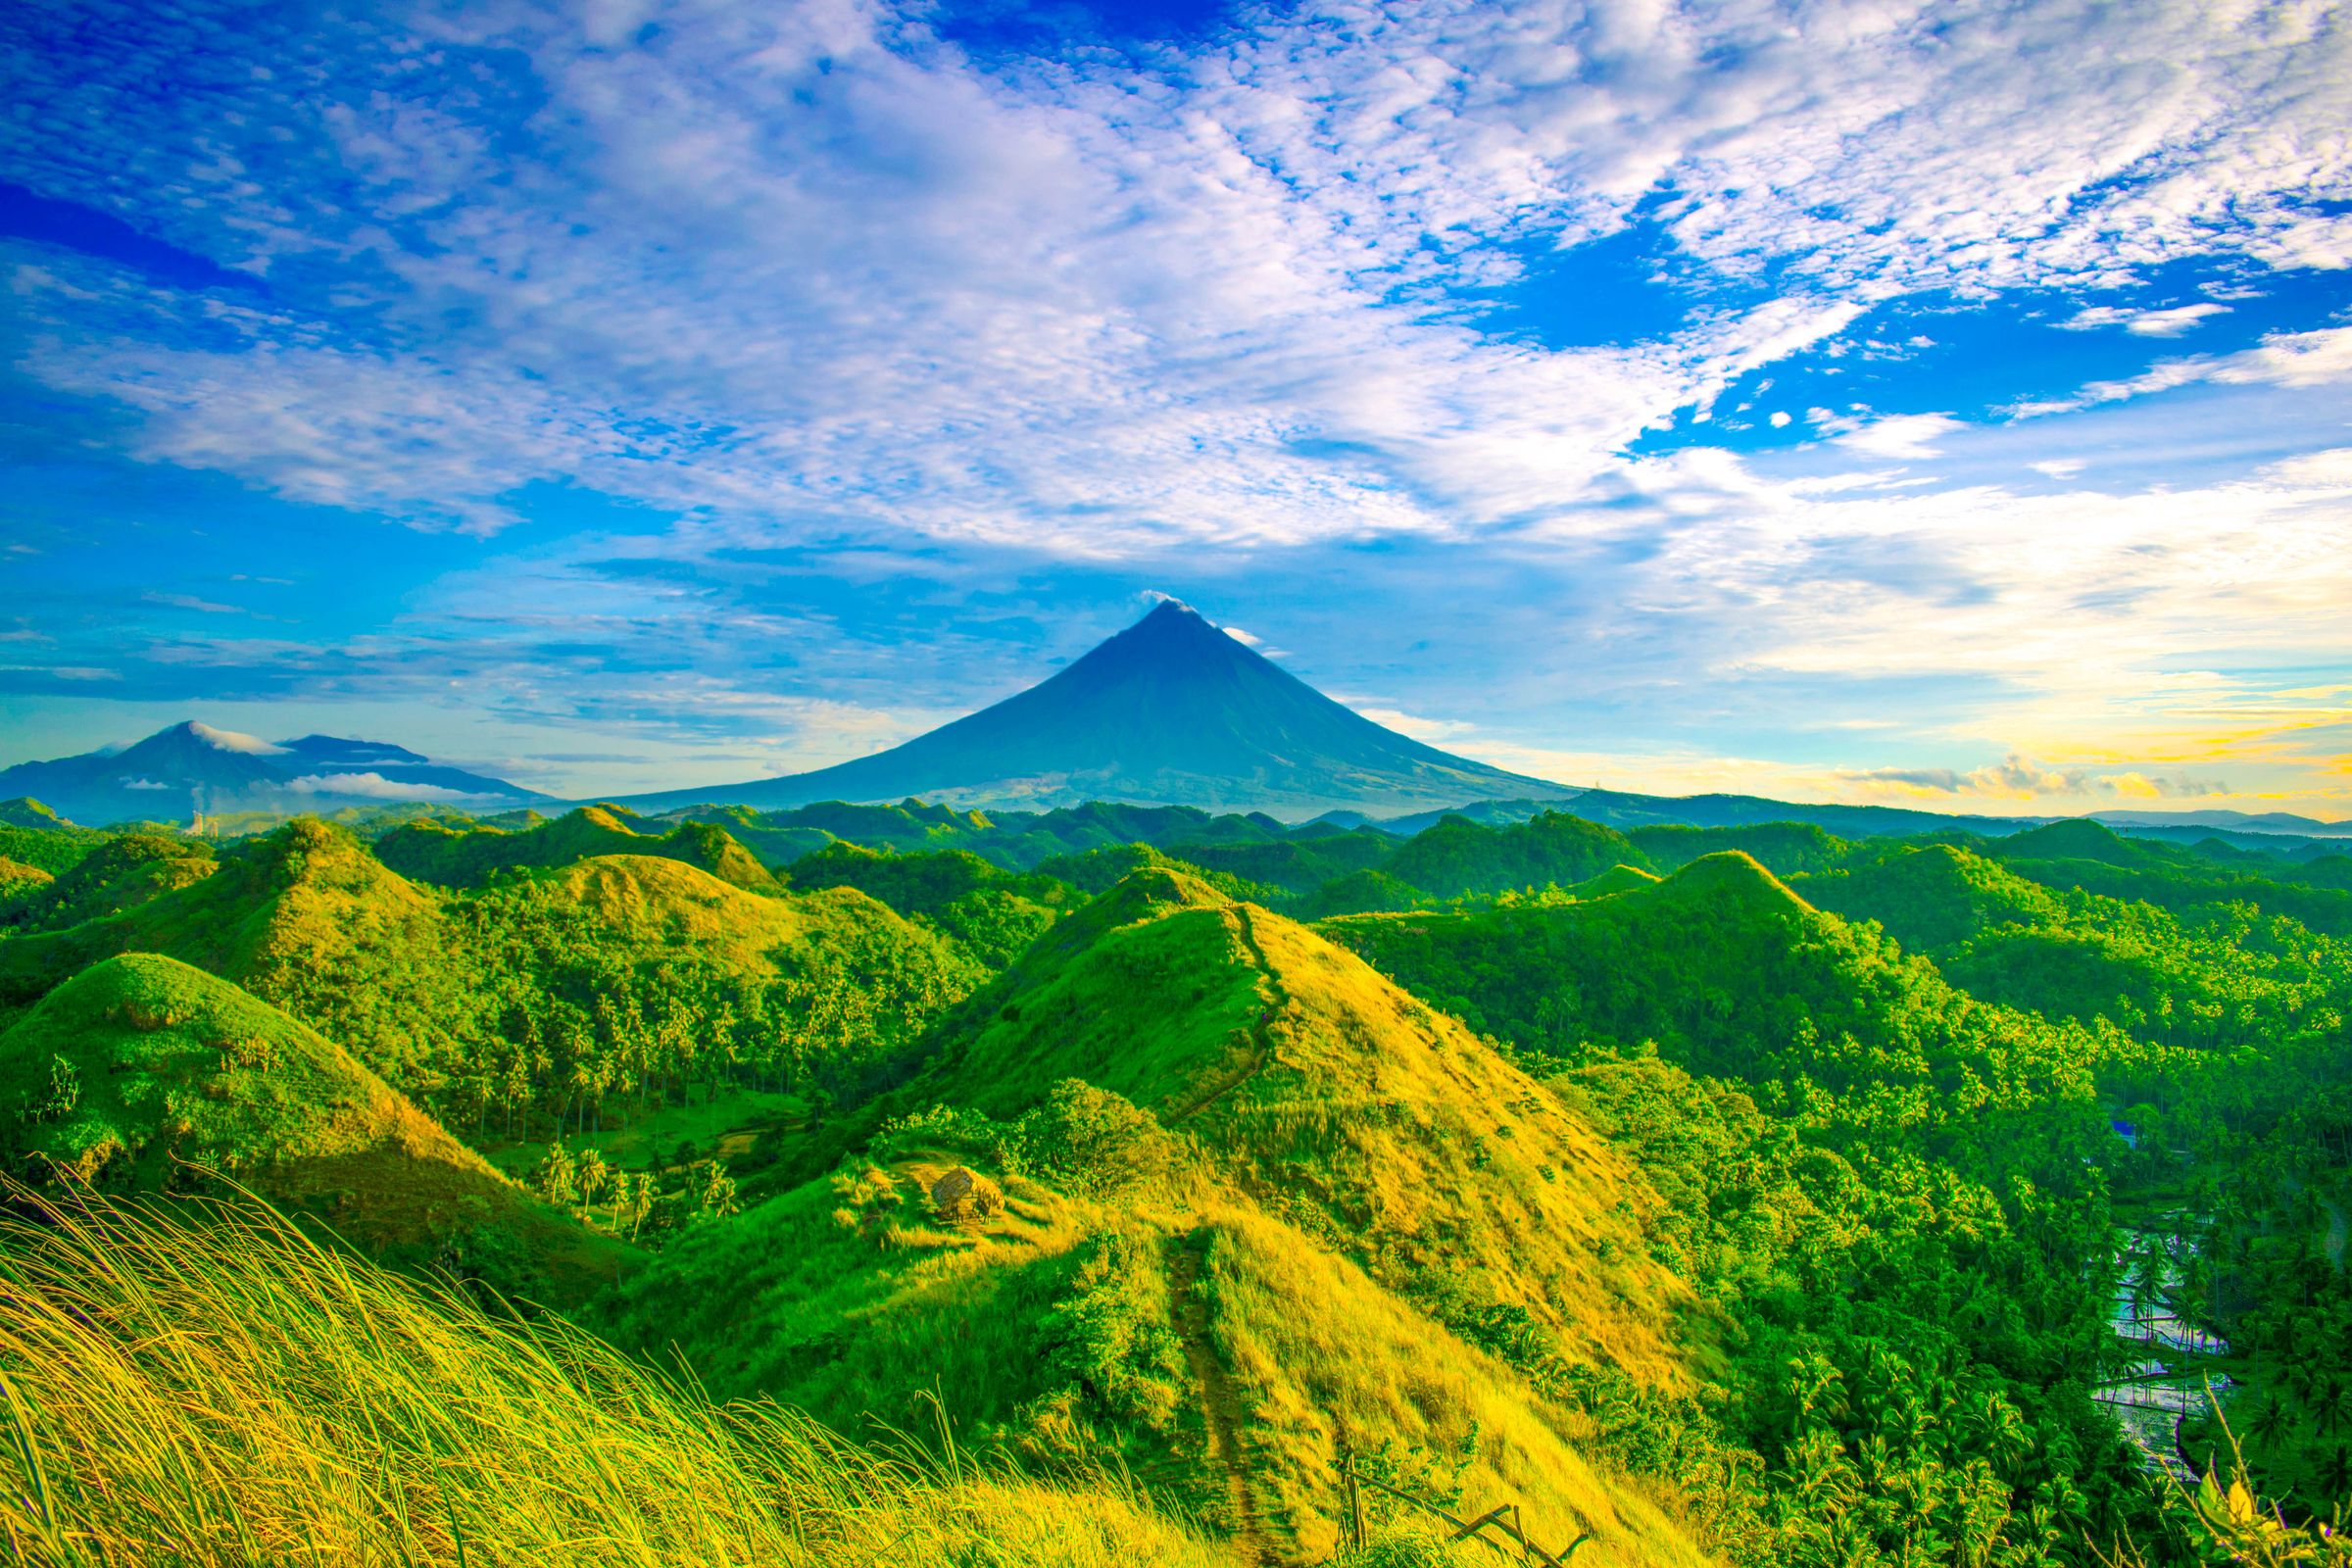 Green rolling hills of Quitinday with the perfect cone of Mount Mayon looming in the distance in Albay, Philippines